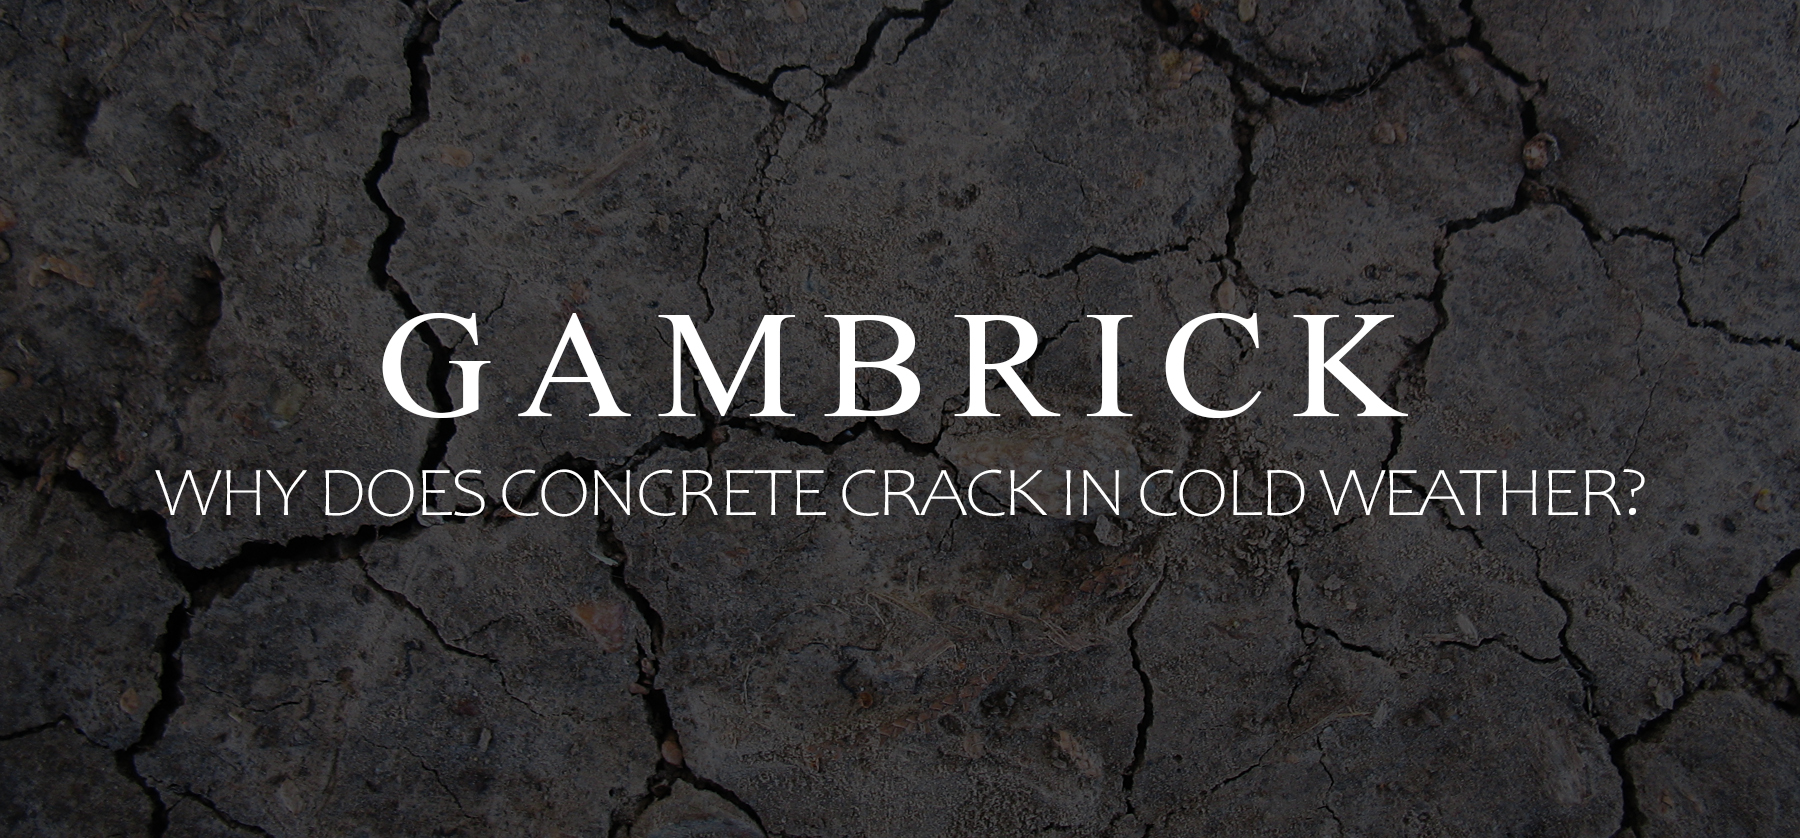 Why Does Concrete Crack in Cold Weather